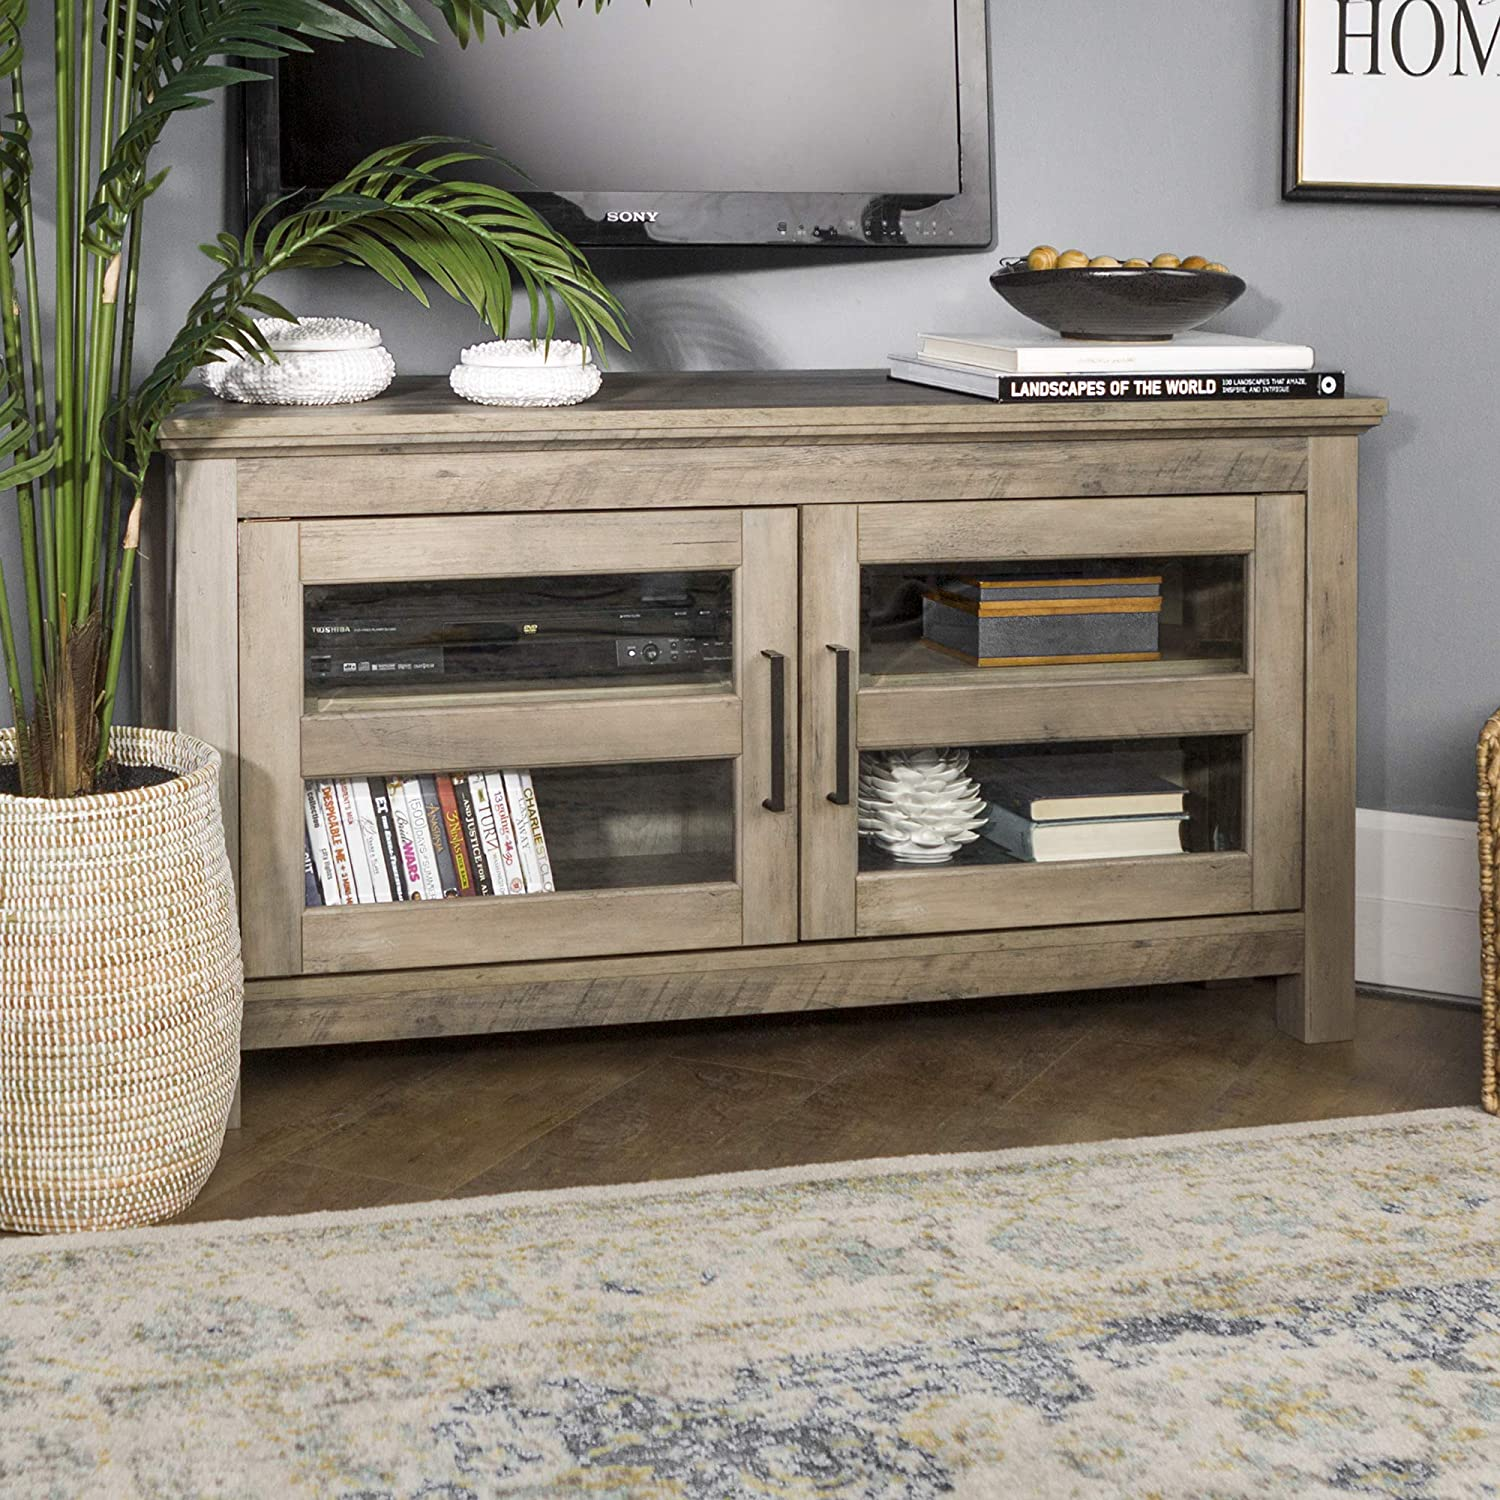 WE Furniture Modern Farmhouse Wood Corner Universal Stand for TV's up to 50